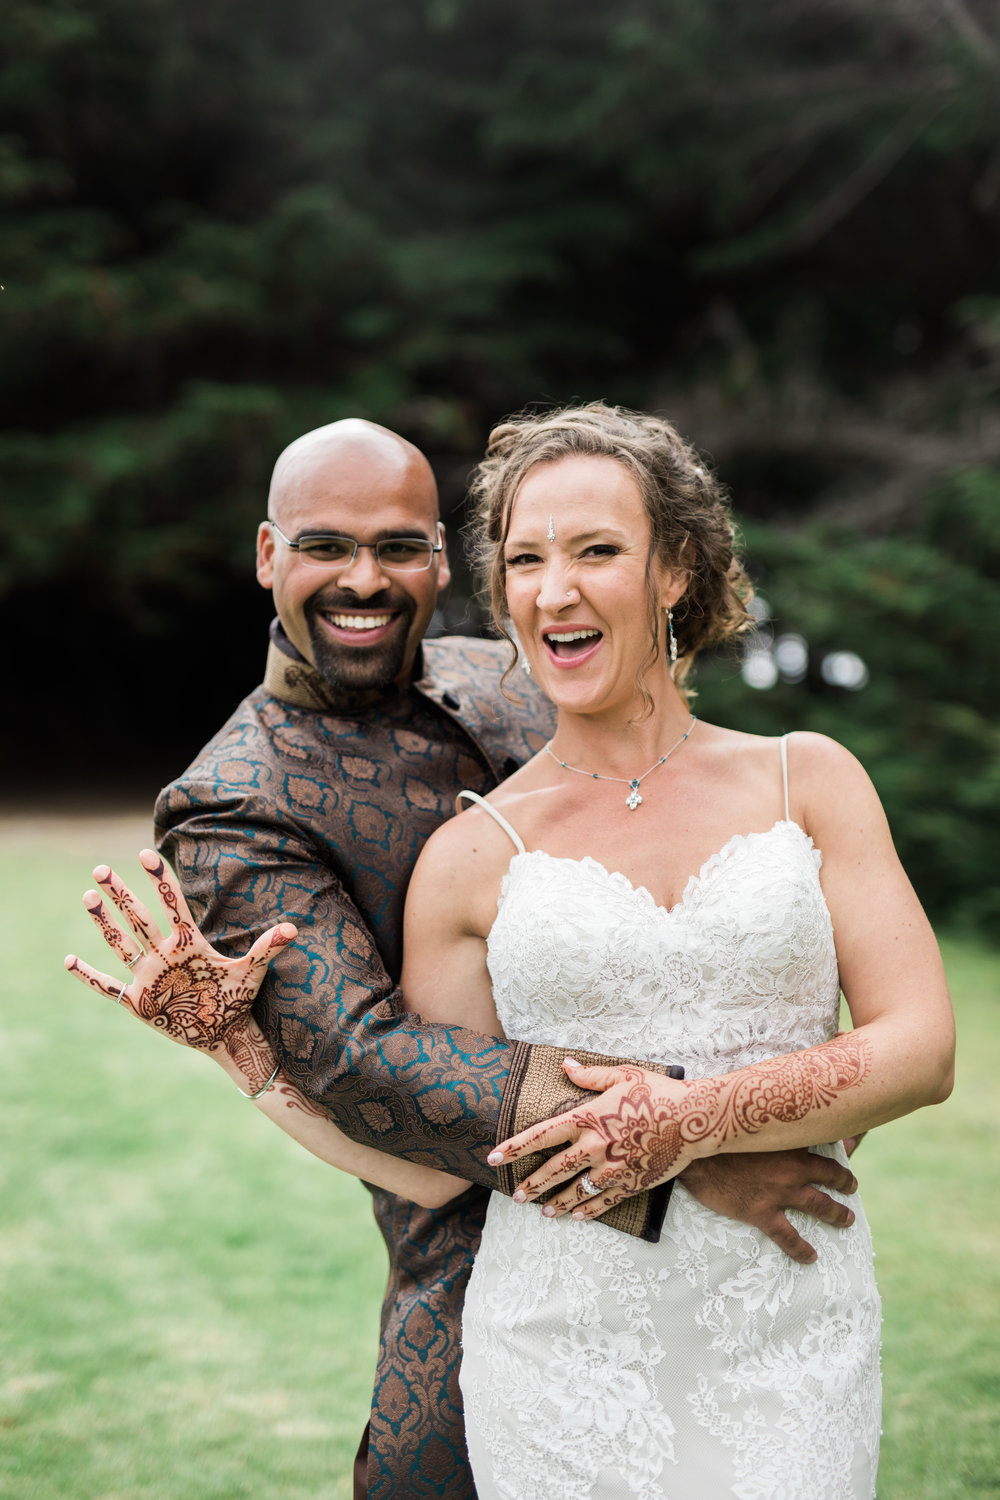 Sneak Peeks - Chandran+Christa-5.jpg